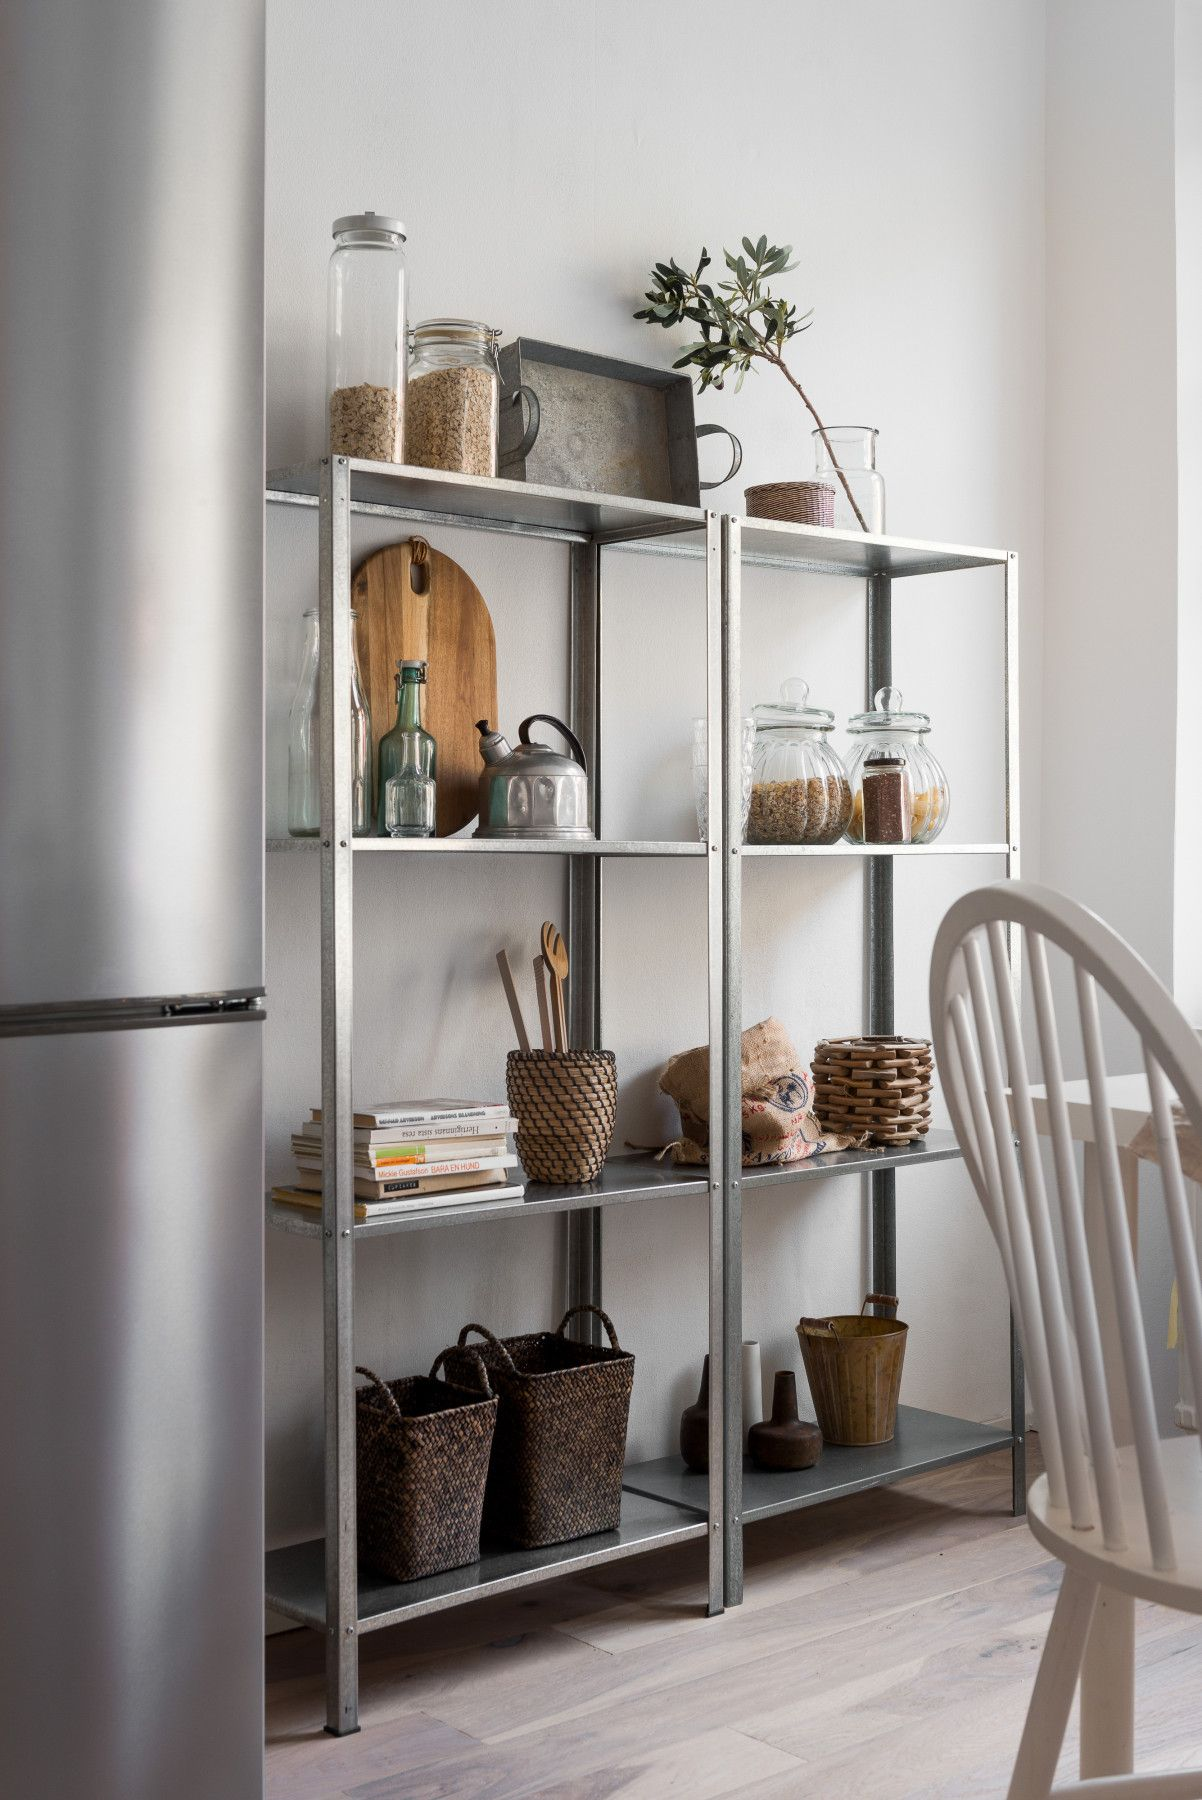 24++ Kitchen shelf ideas ikea ideas